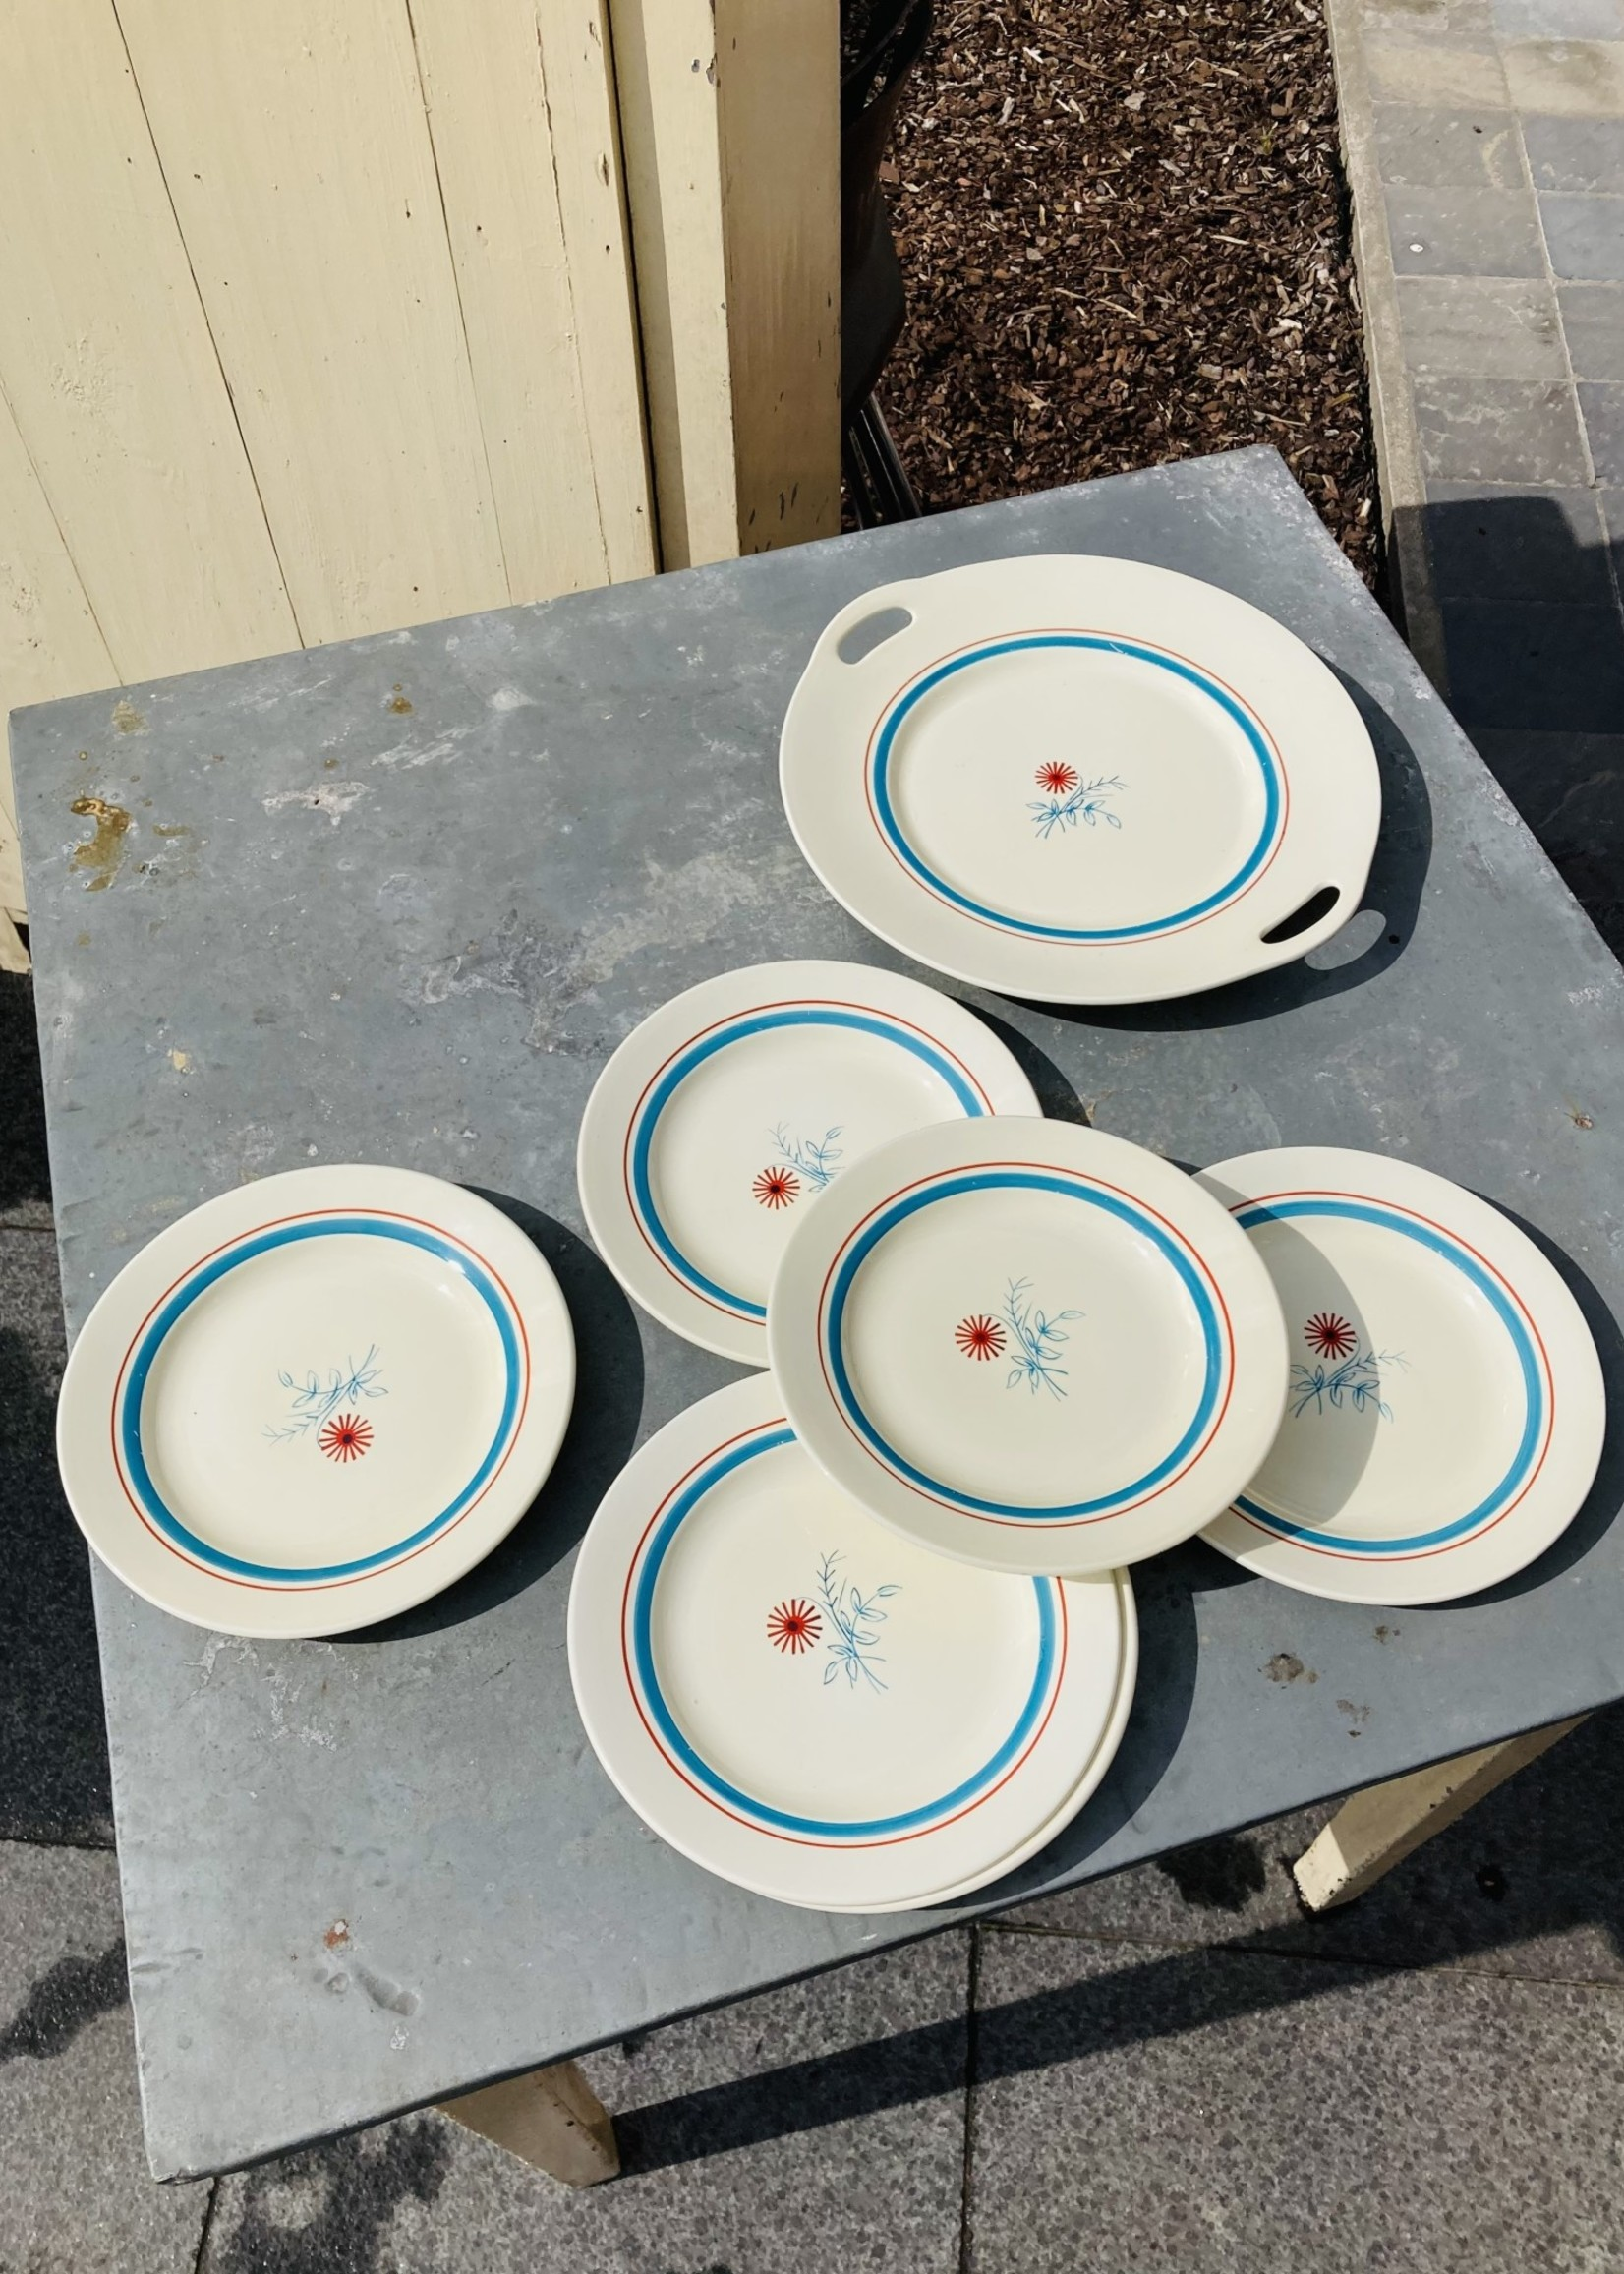 Dish from Nimy with Blue and red flower